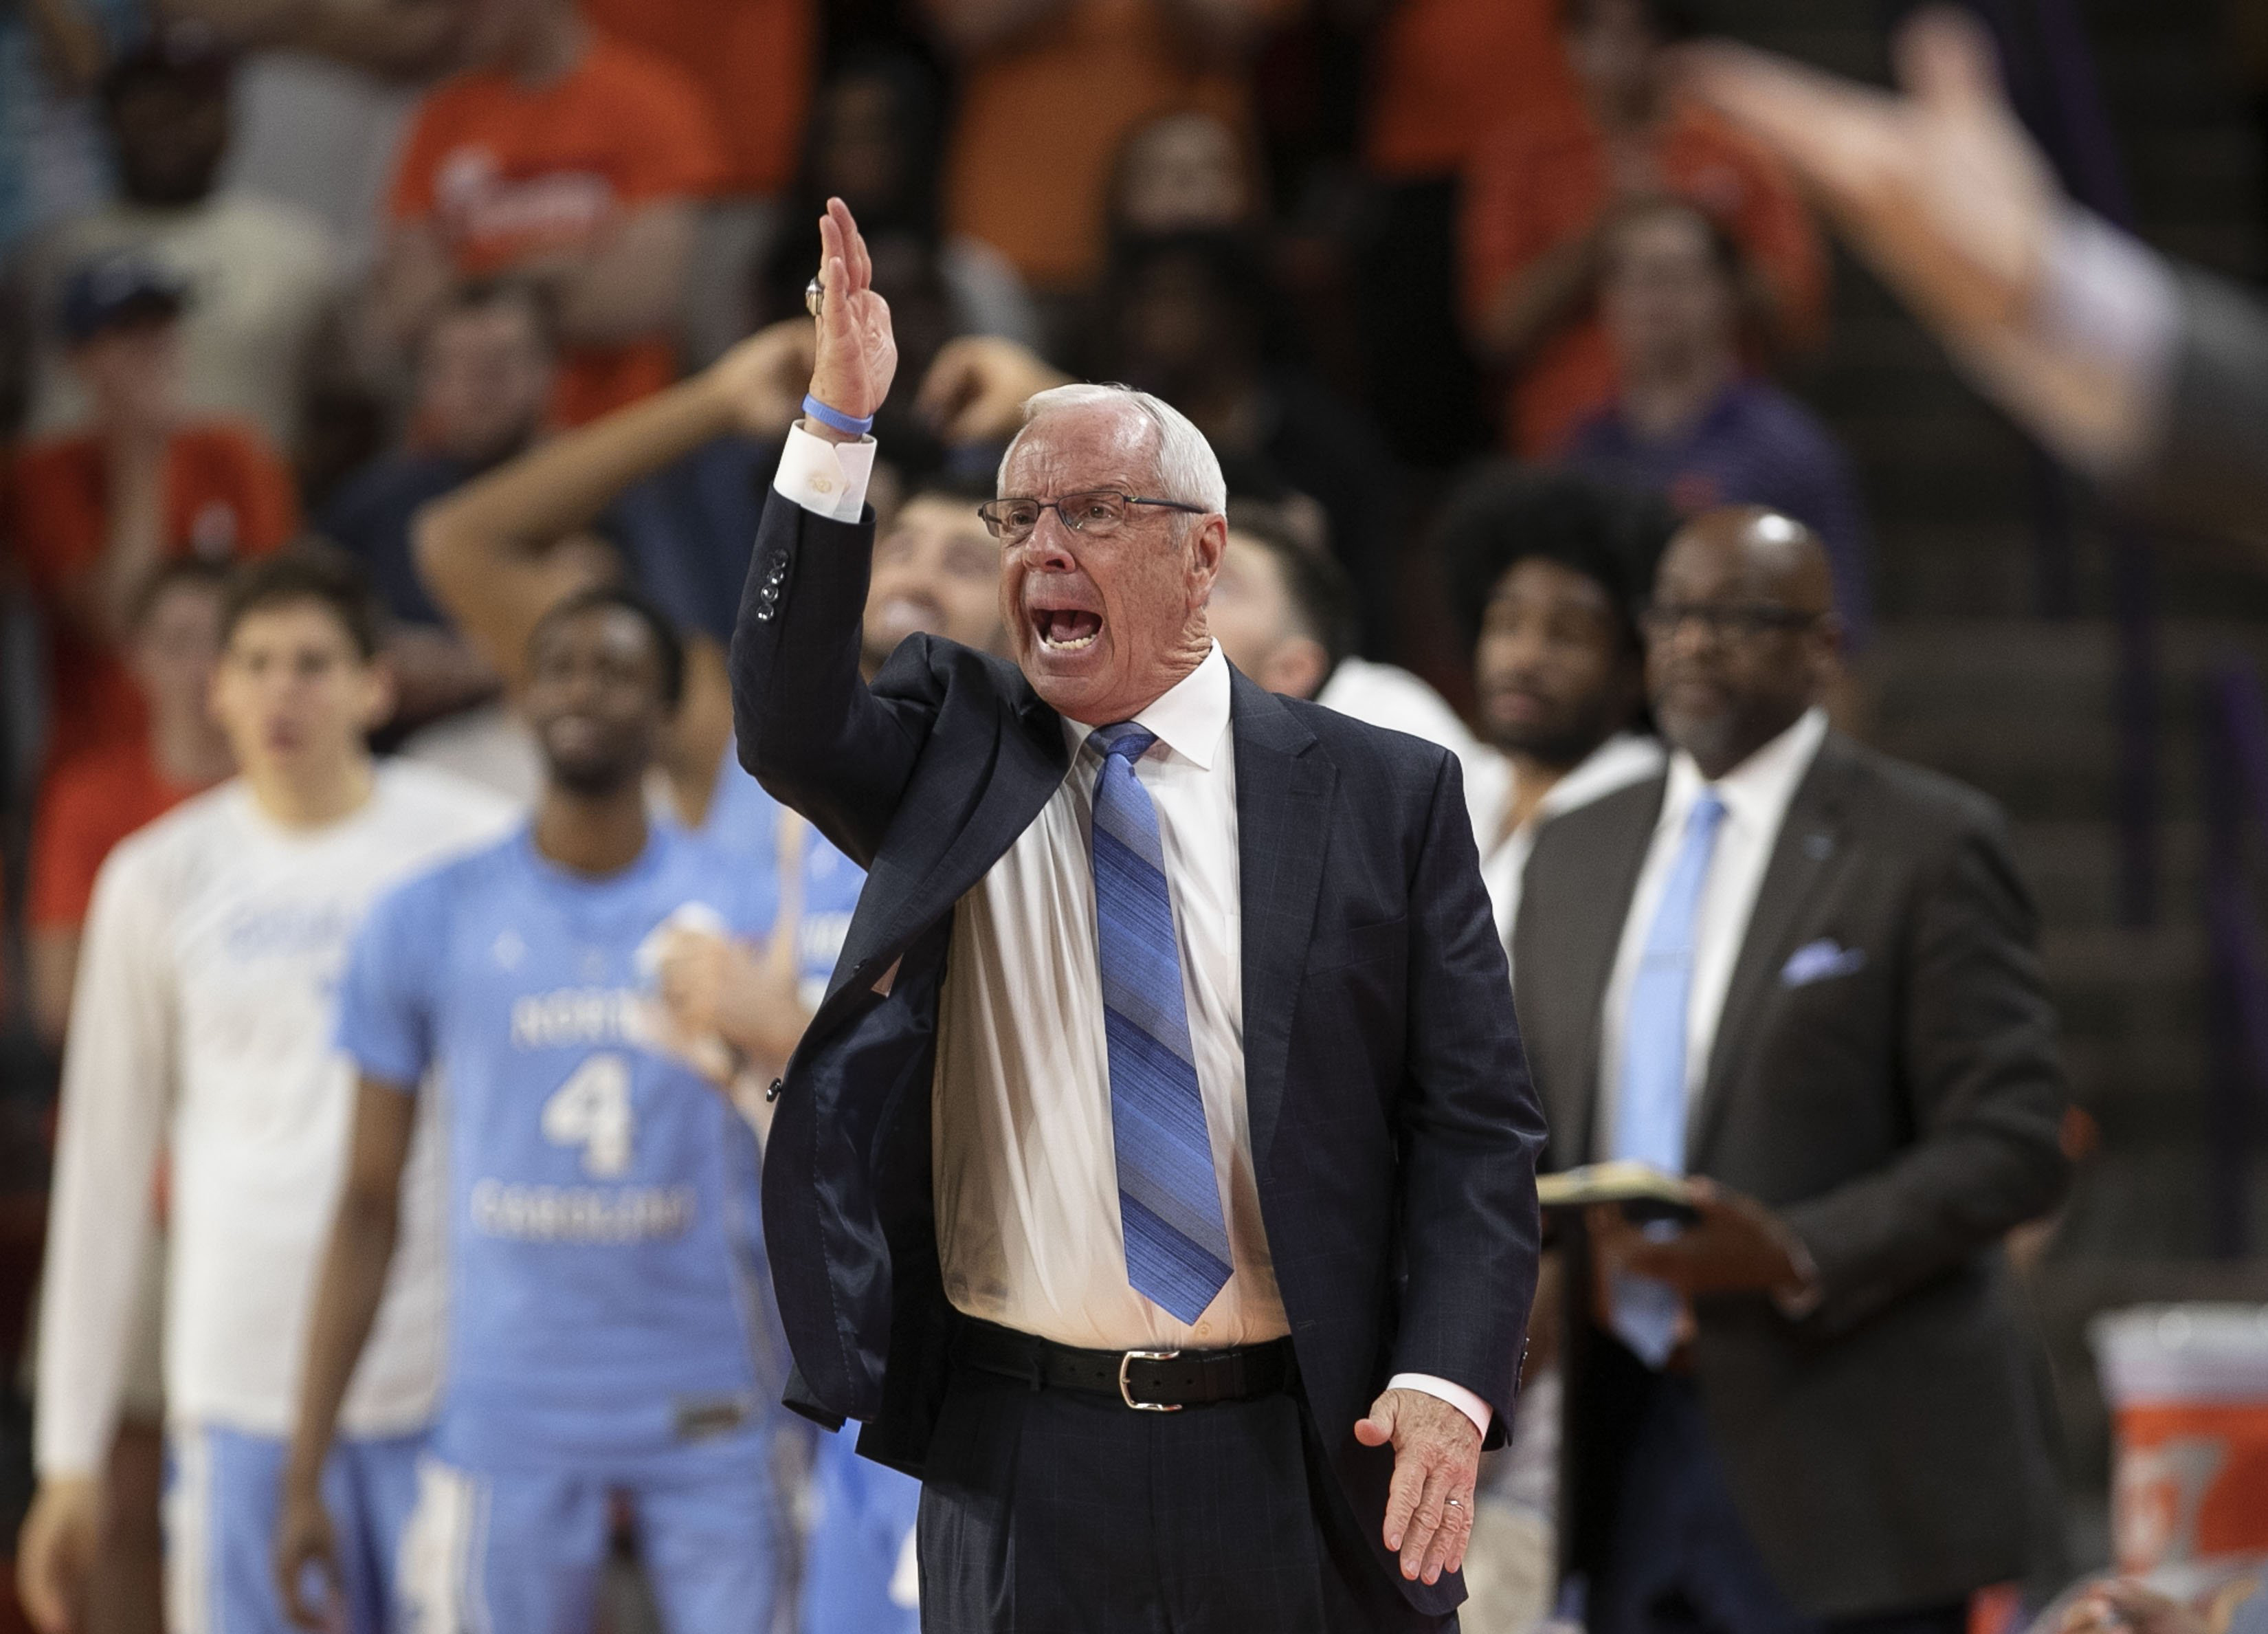 March 2, 2019 - Clemson, SC, USA - North Carolina coach Roy Williams directs his players during the first half against Clemson on Saturday, March 2, 2019, at Littlejohn Coliseum in Clemson, S.C. Williams' Tar Heels topped host Boston College on Tuesday, March 5, 2019, 79-66. (Credit Image: © Robert Willett/Raleigh News & Observer/TNS via ZUMA Wire)